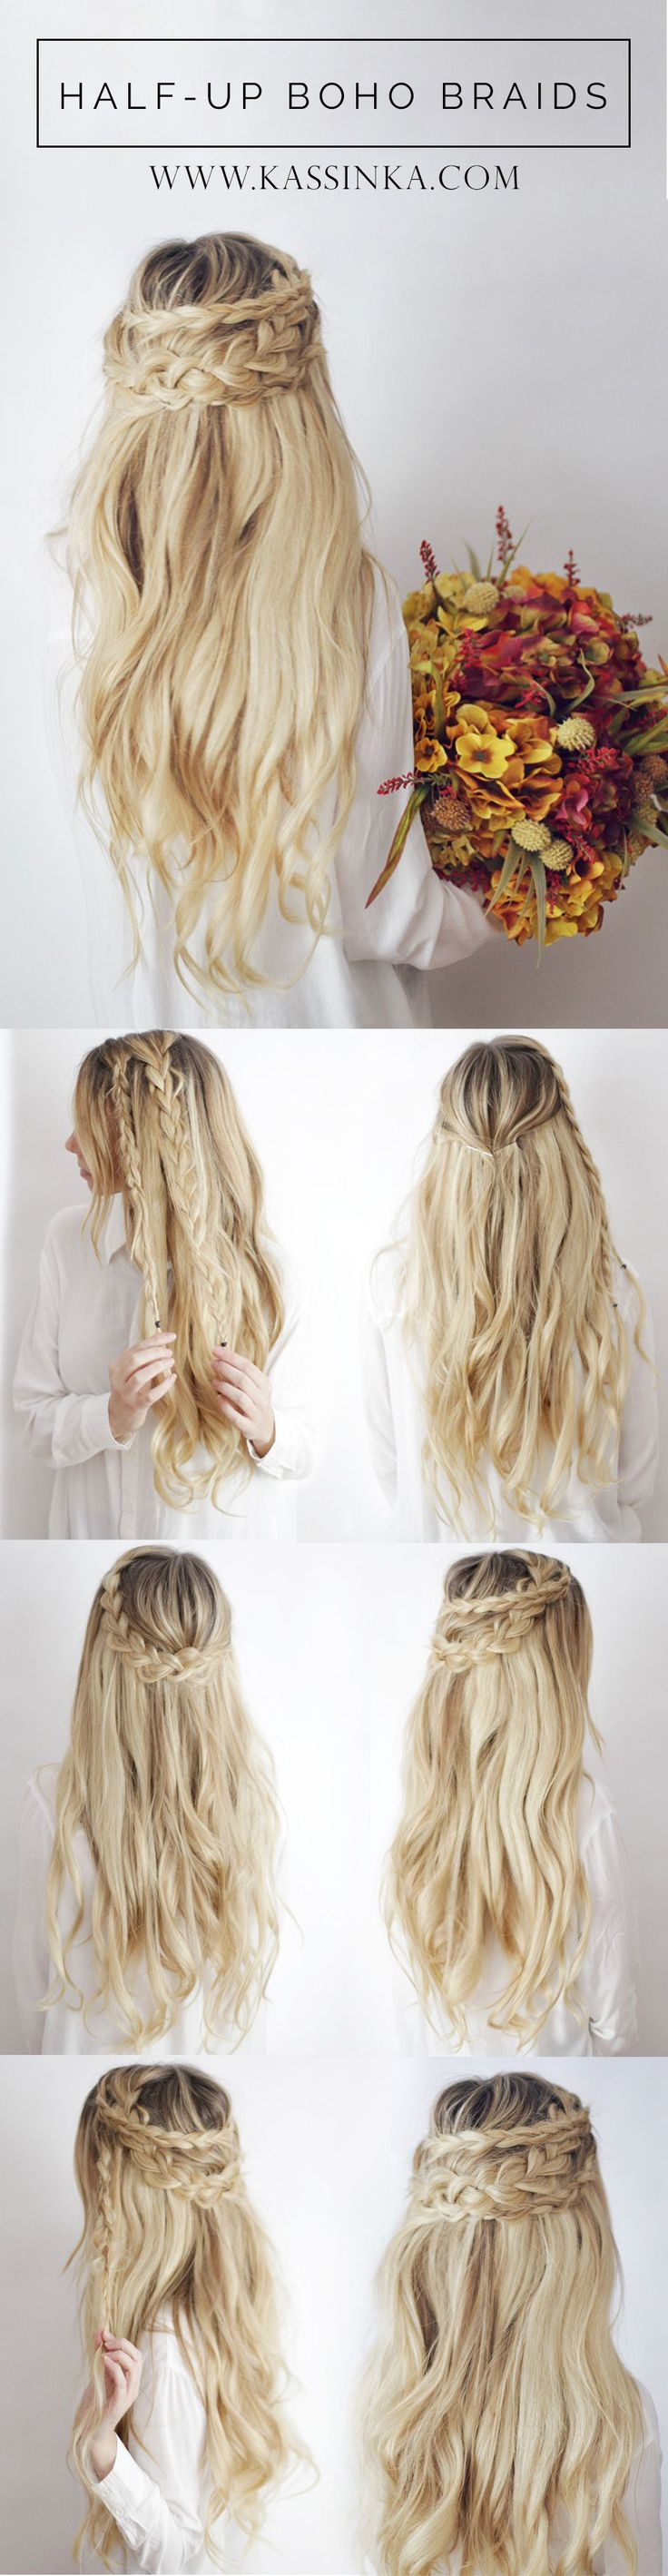 121 best Hair and Beauty images on Pinterest | Hairstyle ideas, Hair ...